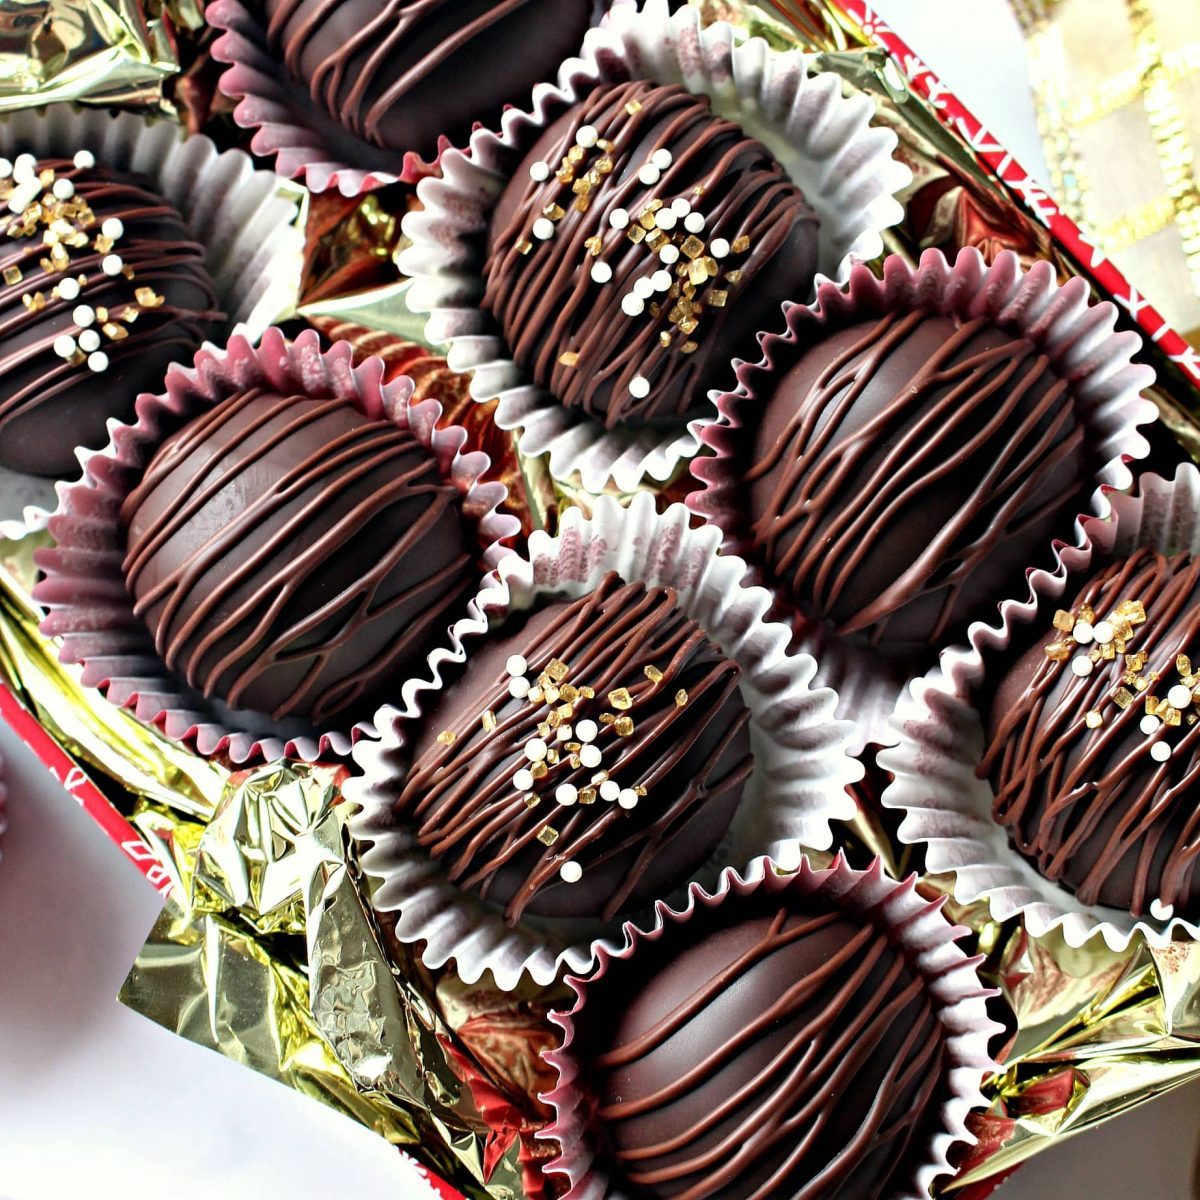 Bonbons in a gift tin